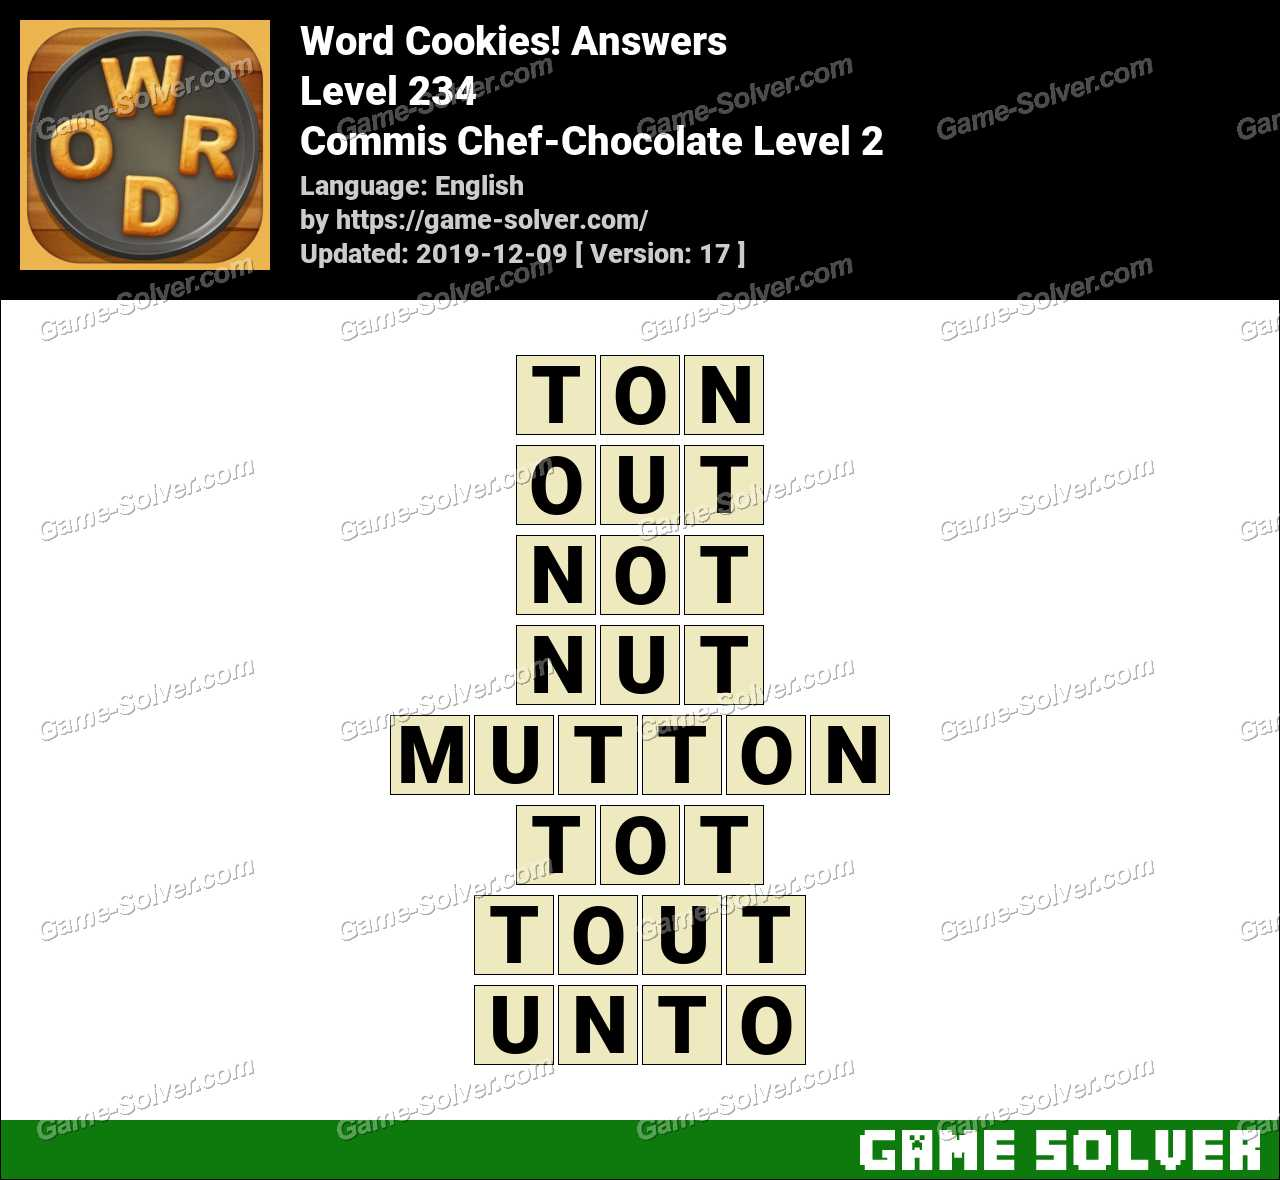 Word Cookies Commis Chef-Chocolate Level 2 Answers